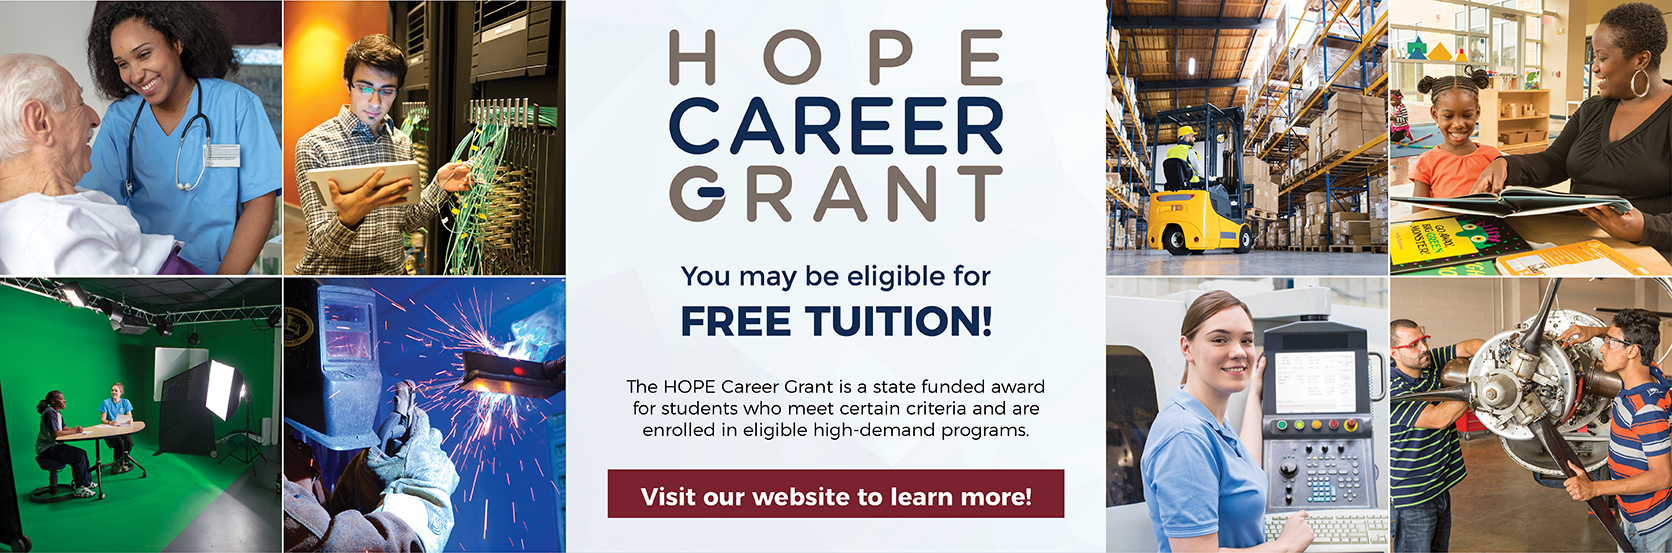 HOPE Career Grant offers qualified students access to tuition-free programs.